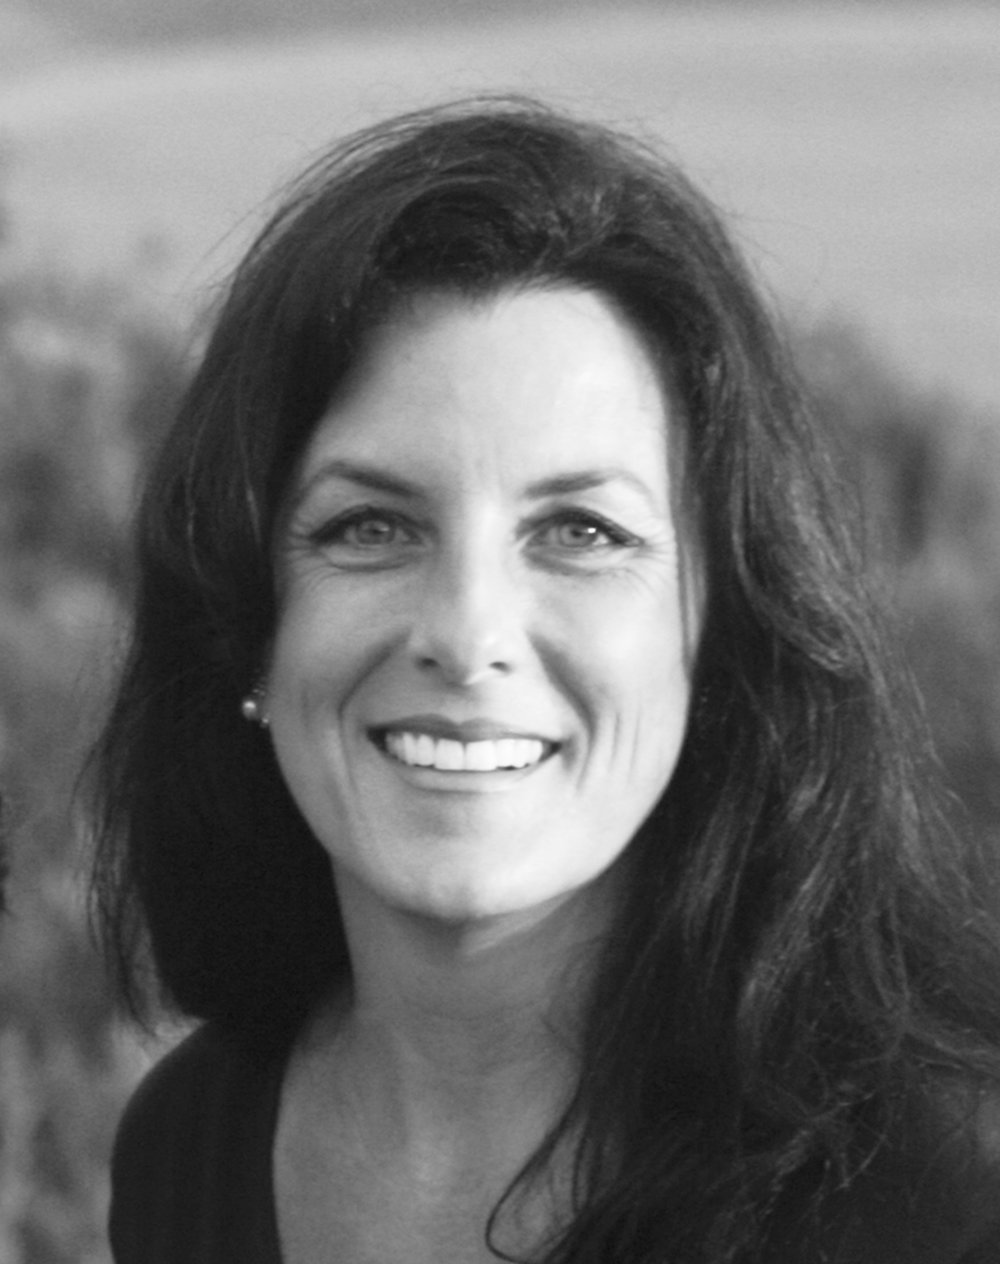 Kathleen Fucci Author Photo 300 dpi_BW.jpg